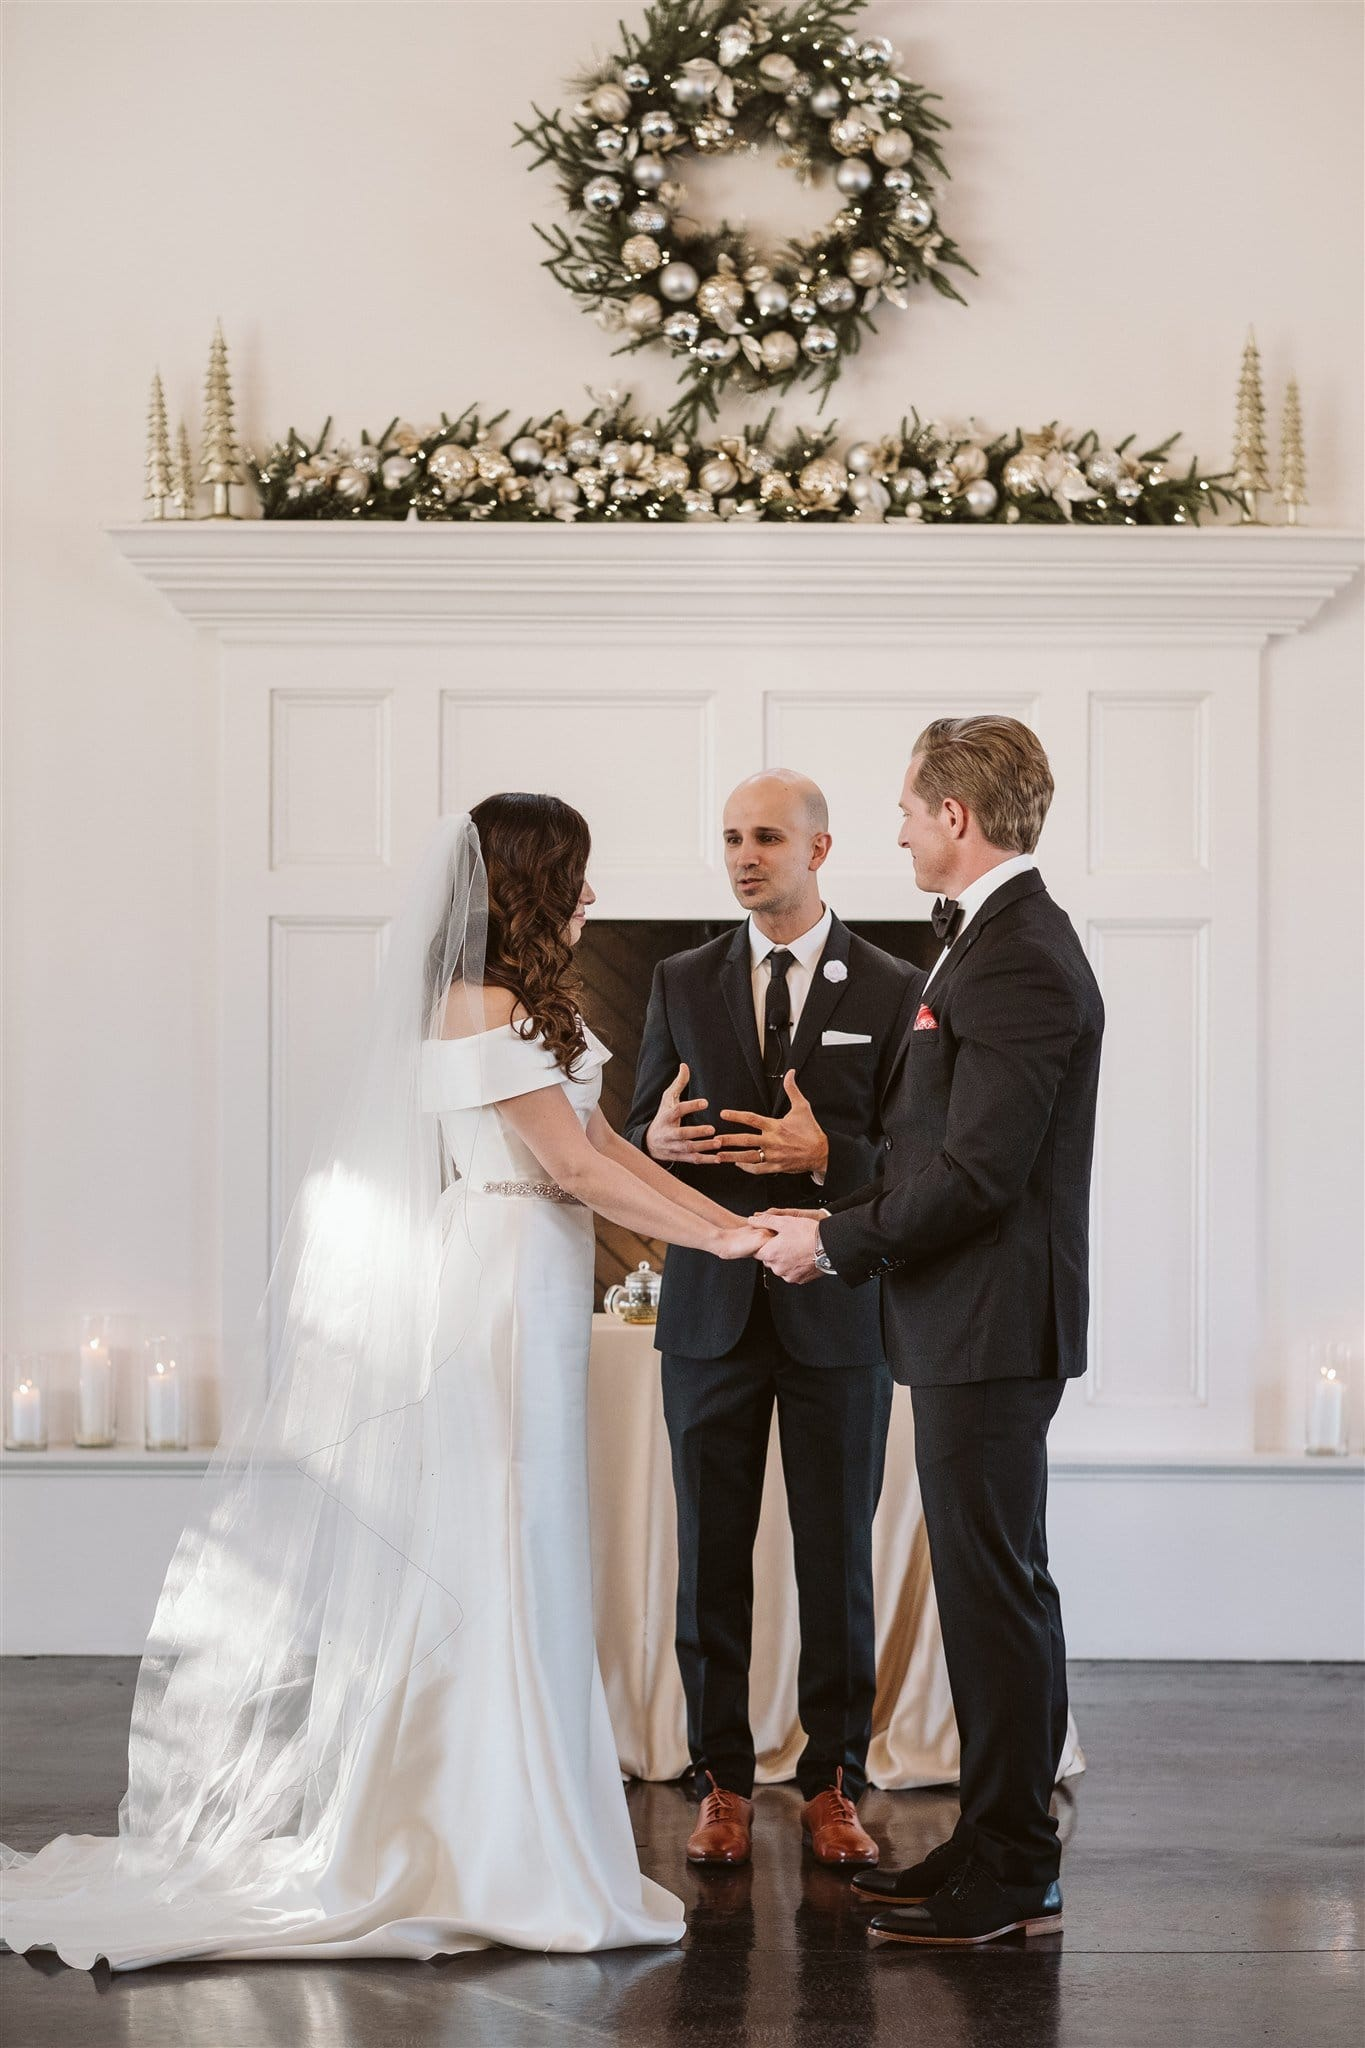 Christmas wedding ceremony in front of fireplace